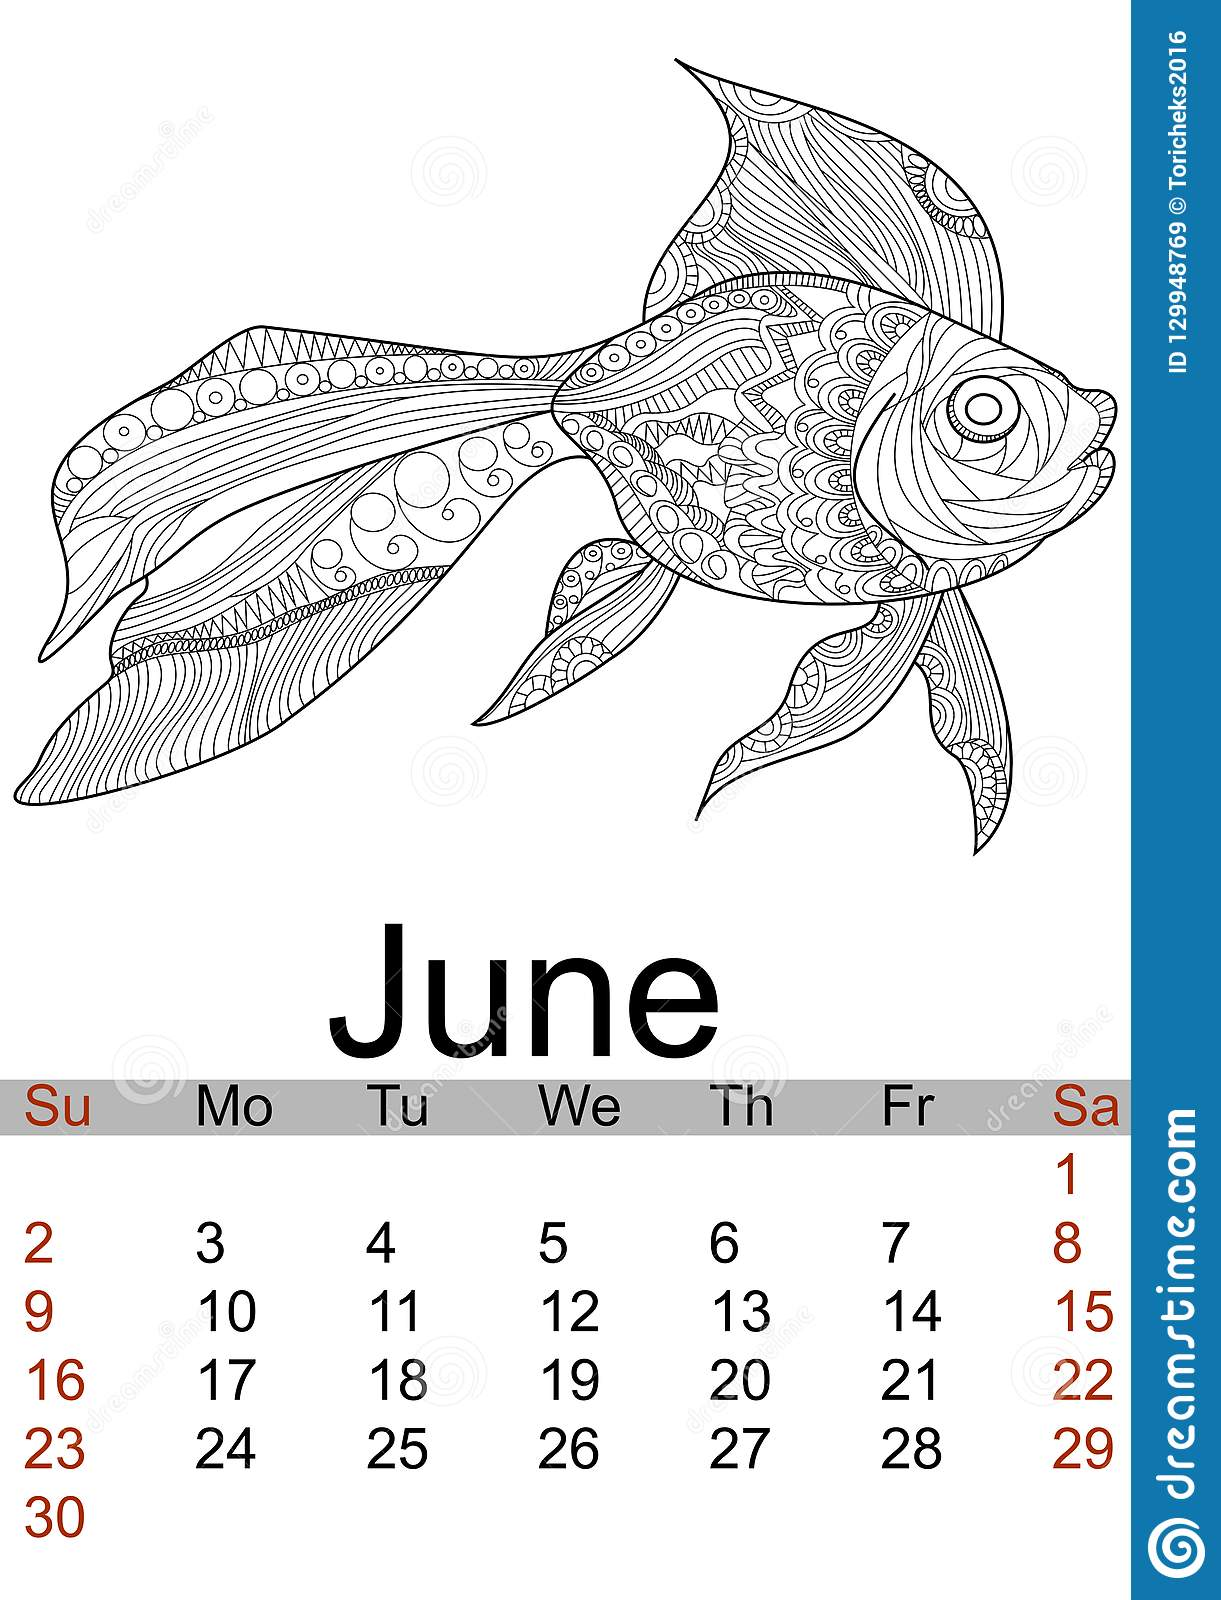 June calendar 2019. Antistress coloring gold fish, sea animal, patterns. Vector